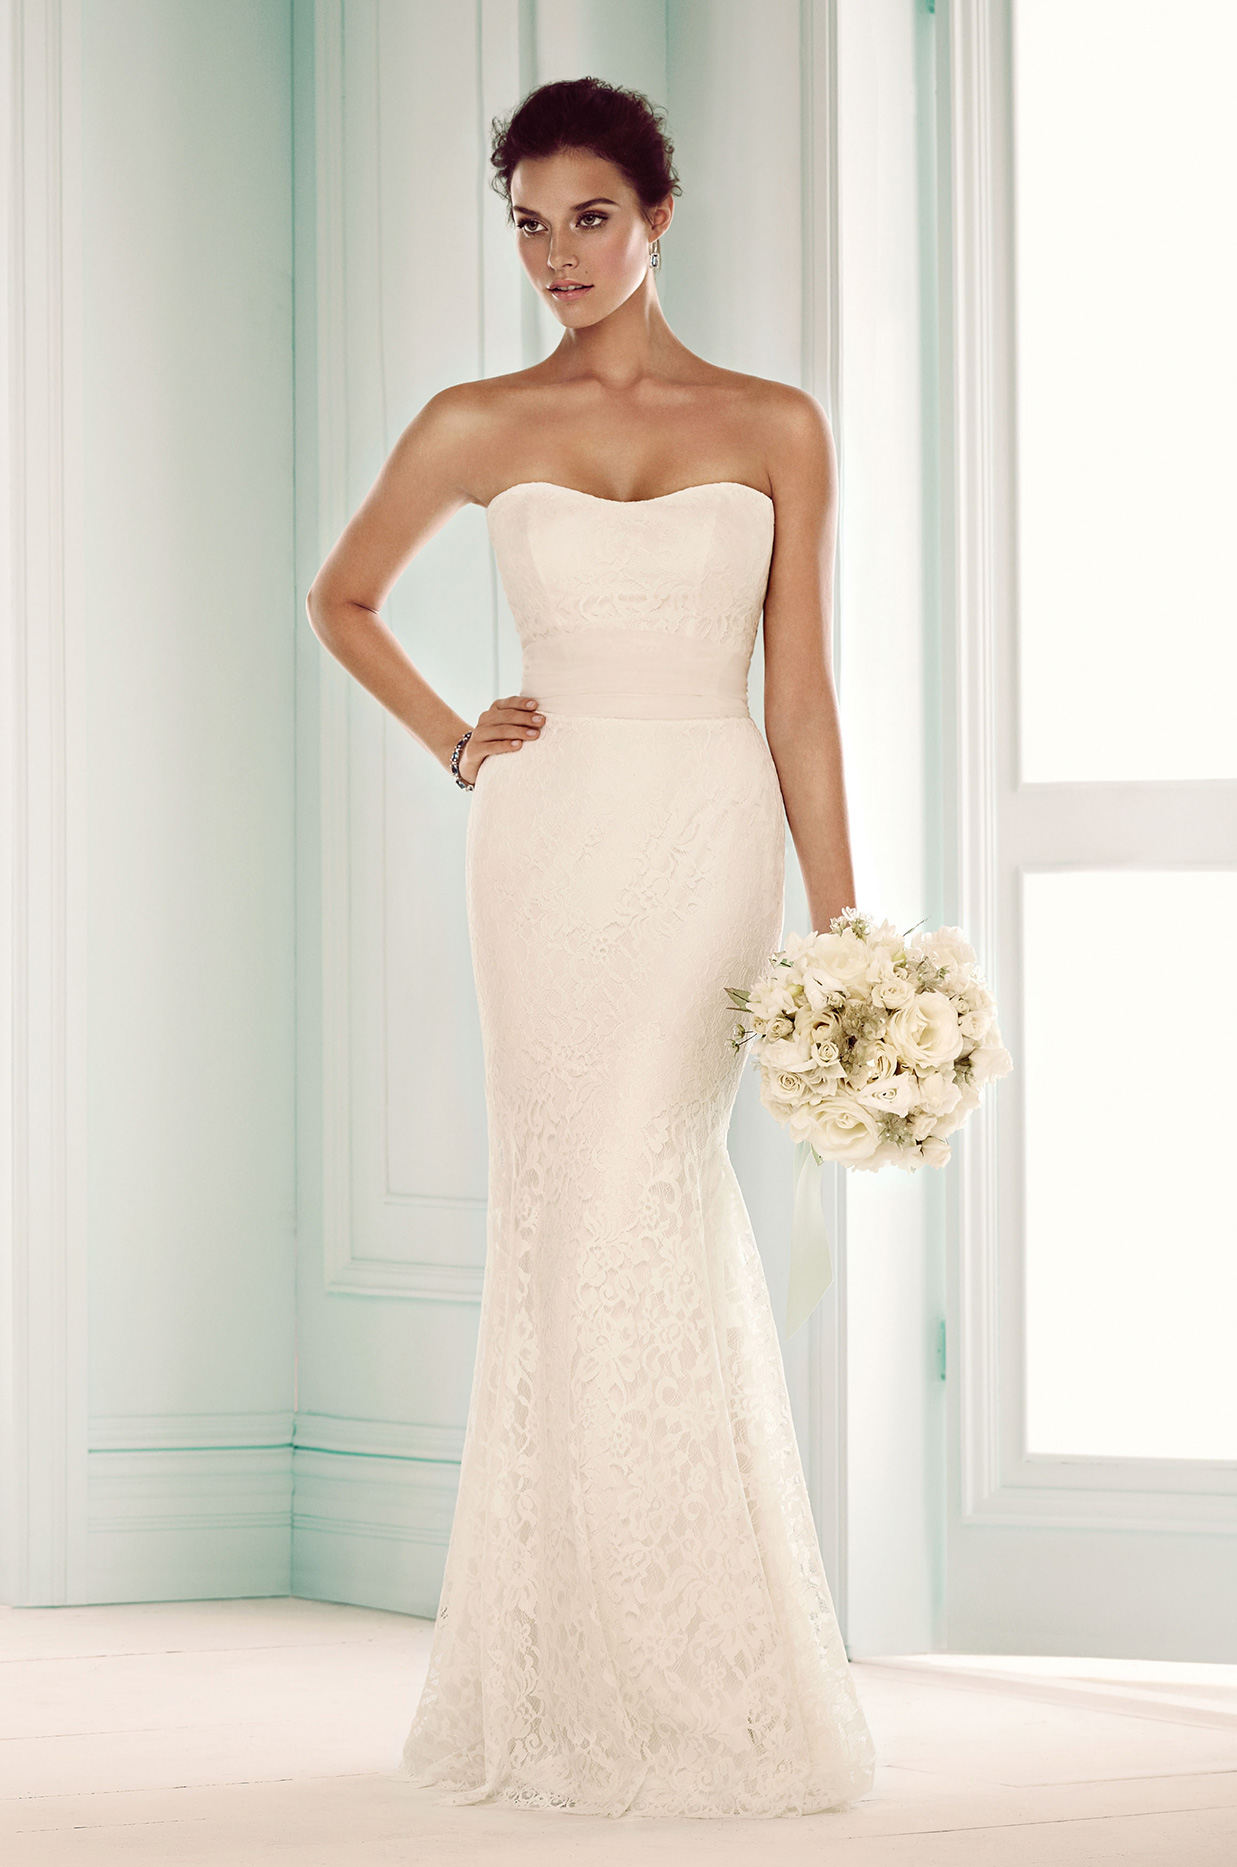 style-1661-front-mikaella-bridal-wedding-dress-bridal-gown